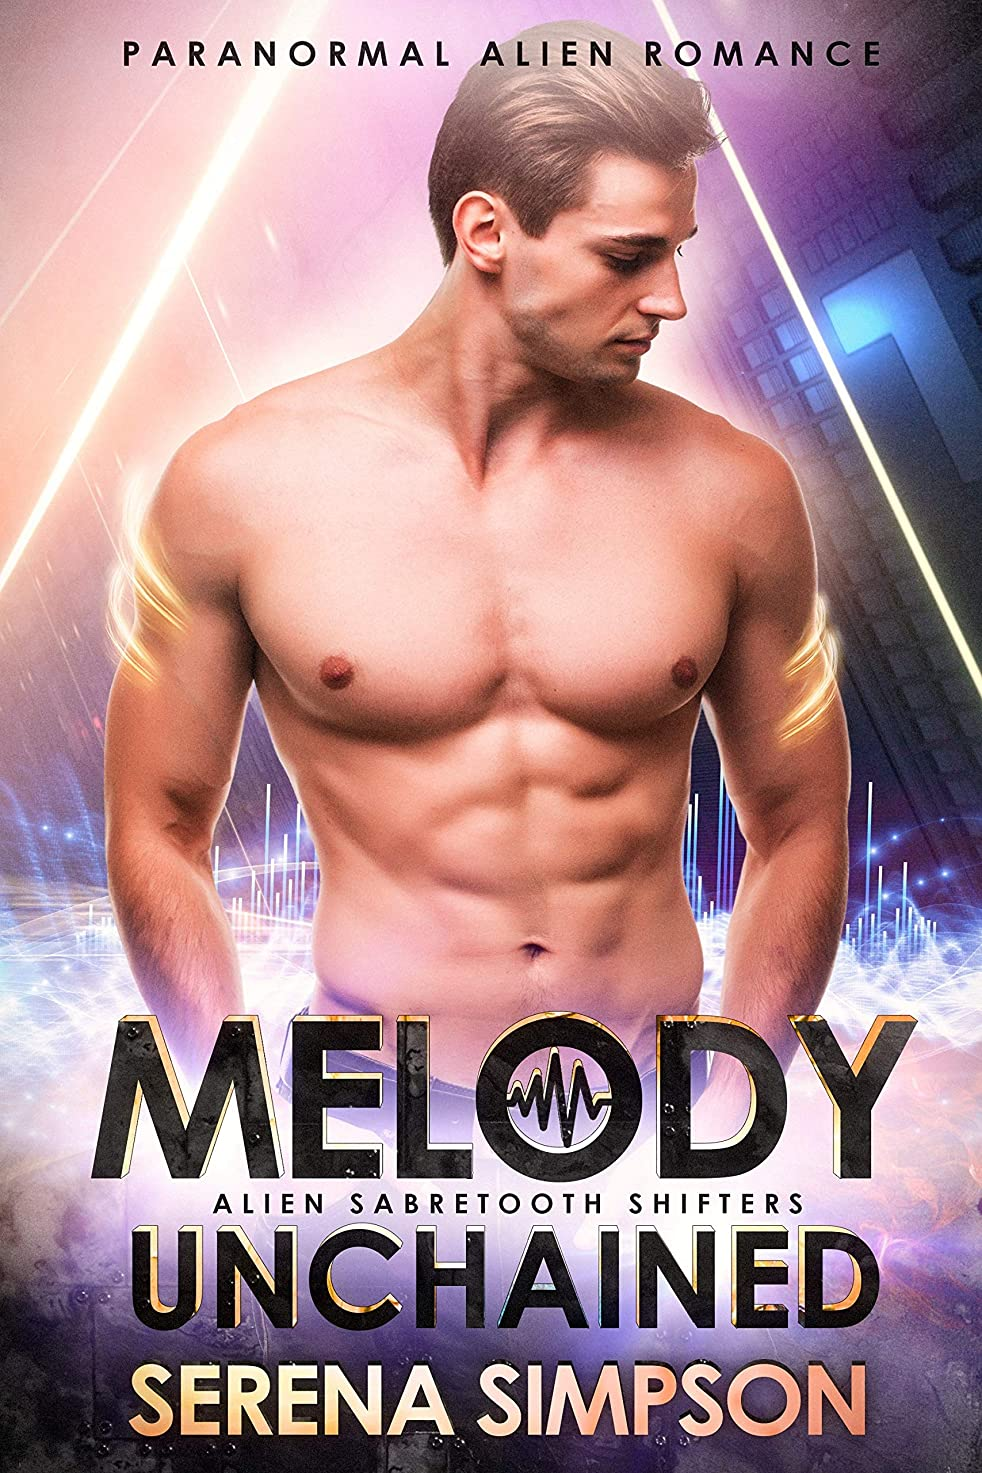 ハイブリッドワイヤー無視できるMelody Unchained (Alien Sabretooth Shifters Book 2) (English Edition)